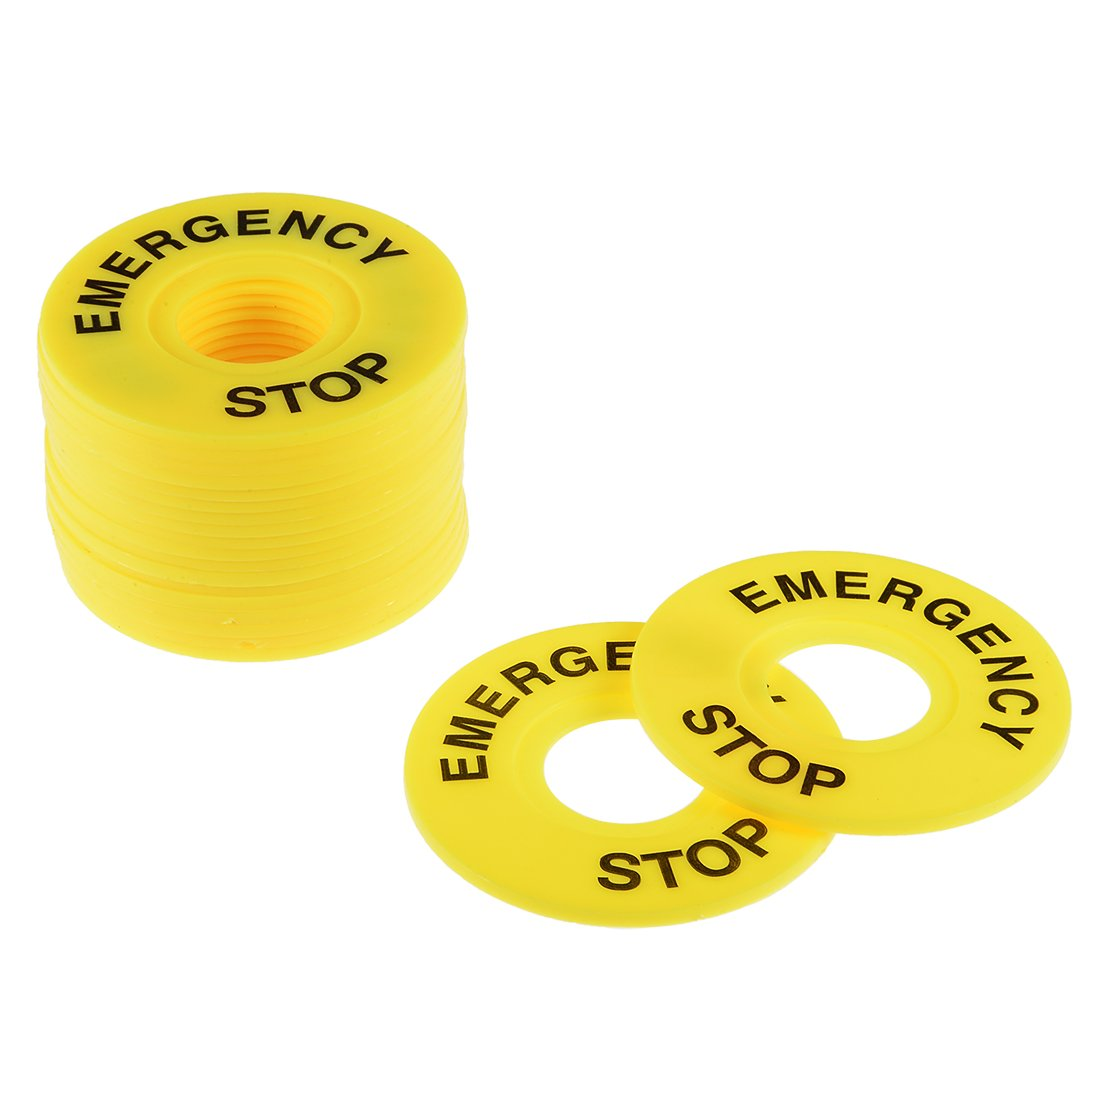 uxcell 20 Pcs 22mm Inner Diameter Emergency Stop Sign for Push Button Switch Replacement